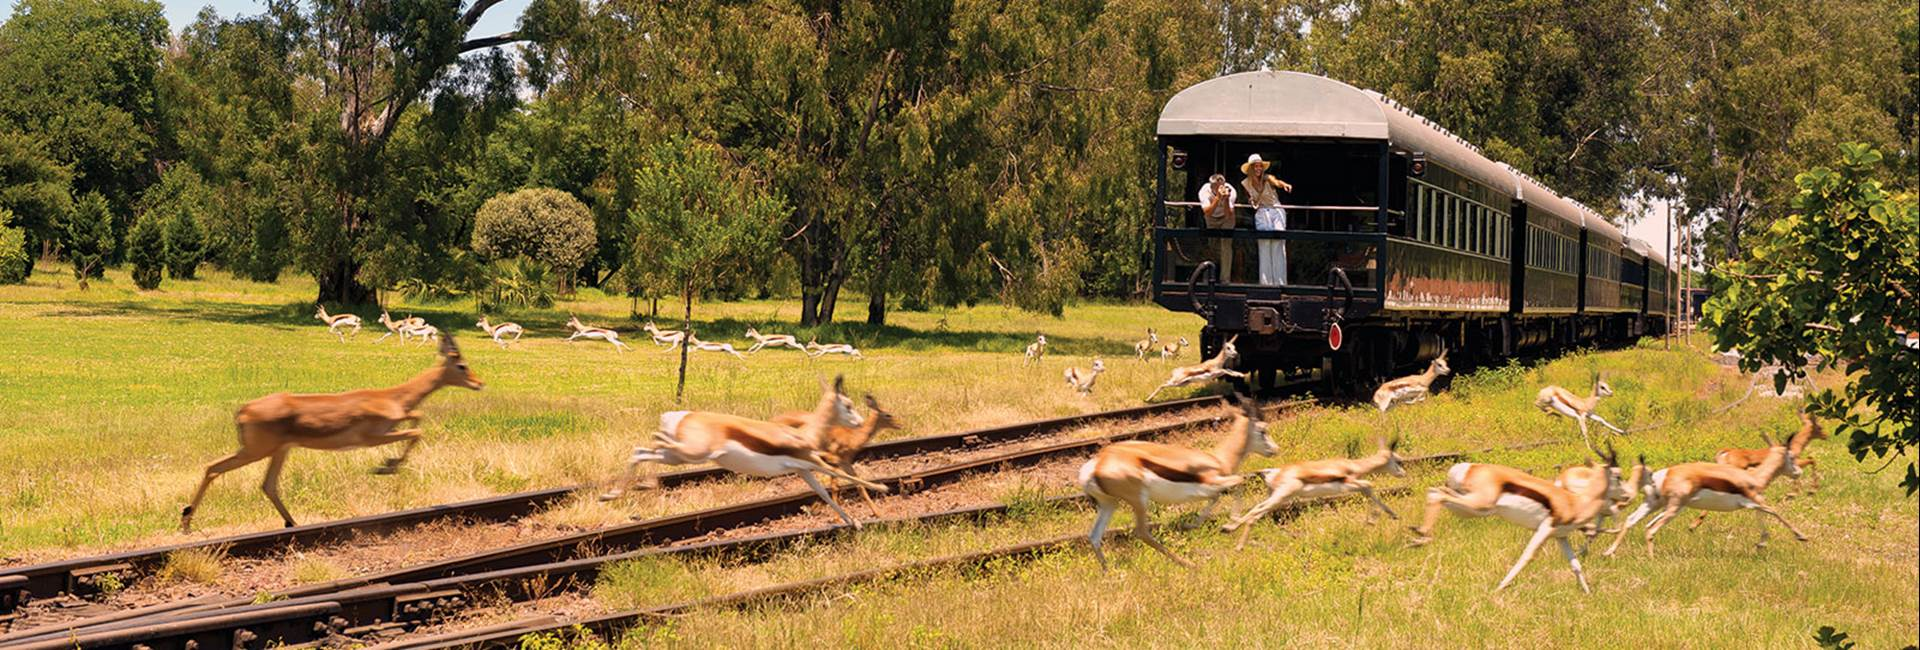 Shongololo Express - The Good Hope/Golf Tour